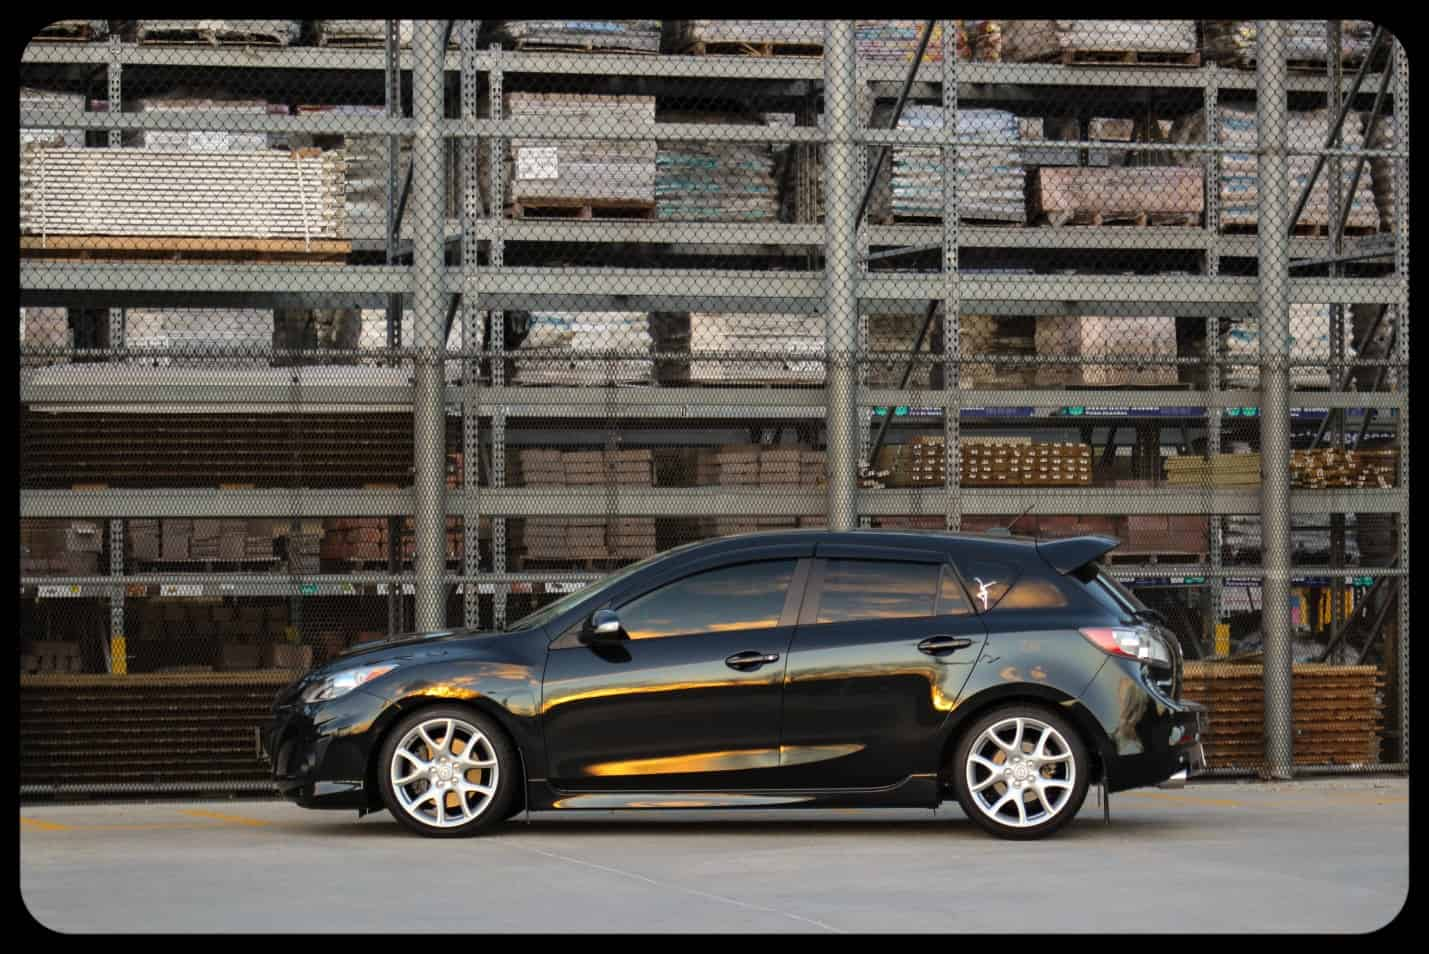 Joe-Perry-2011-Mazdaspeed-3-CorkSport-Featured-Mazda-Speed-3-Car-SideShot